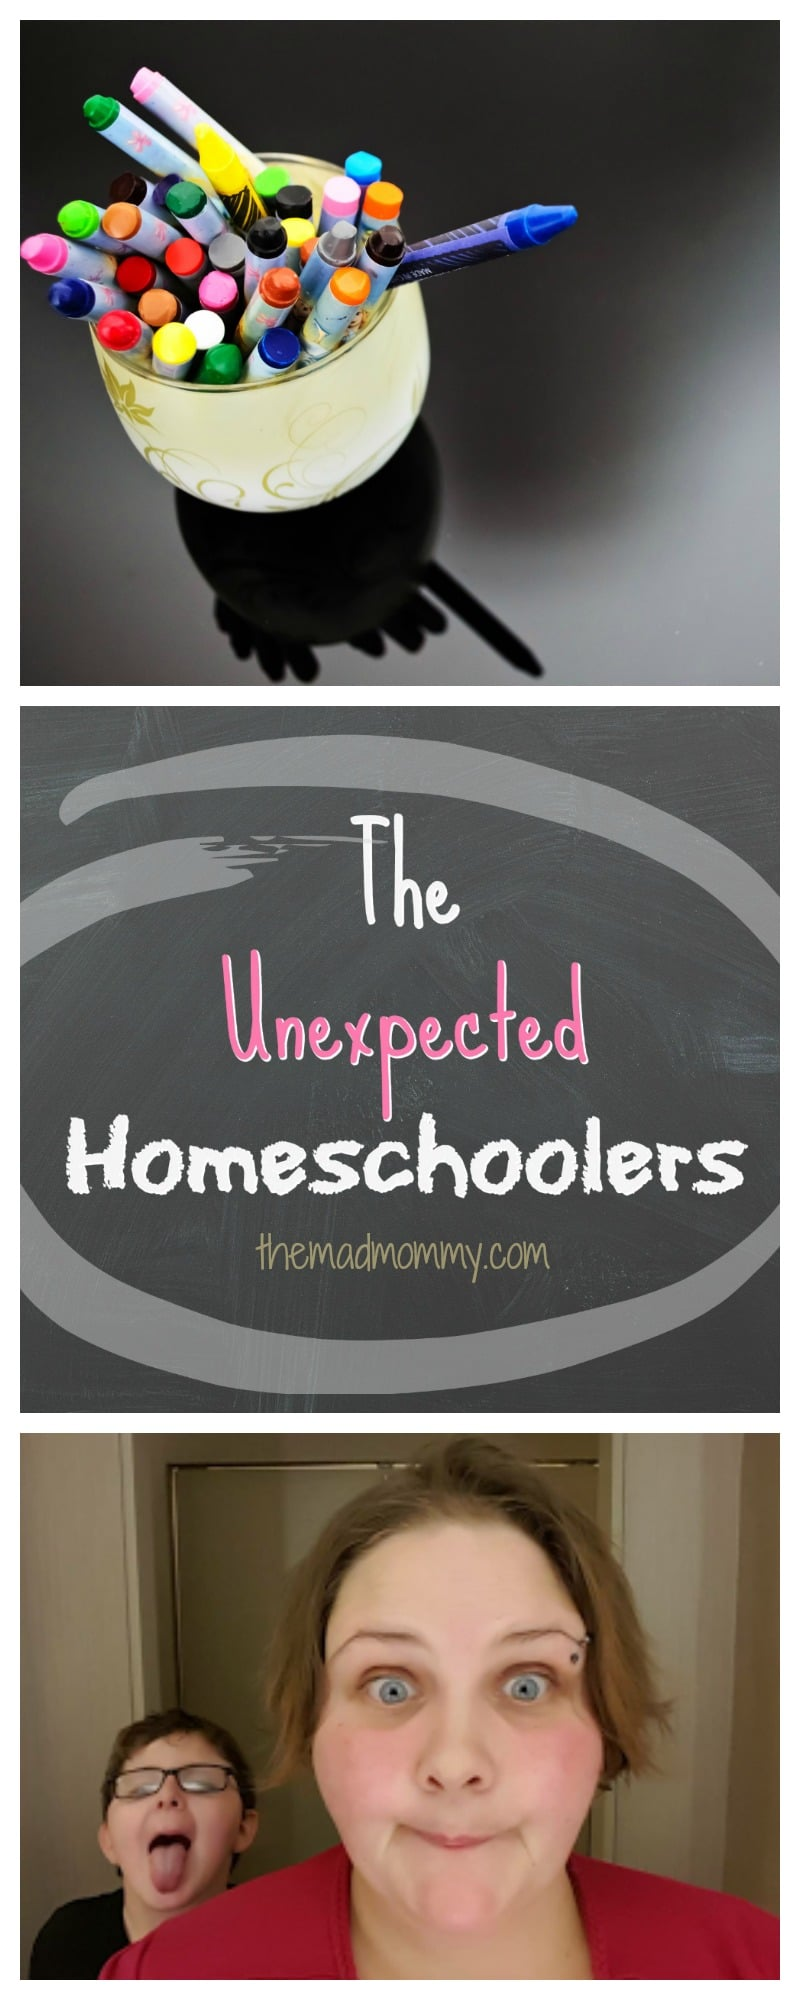 We may have become the unexpected homeschoolers, but it was the best decision we could've made for our son, at that time, to benefit his health and happiness.